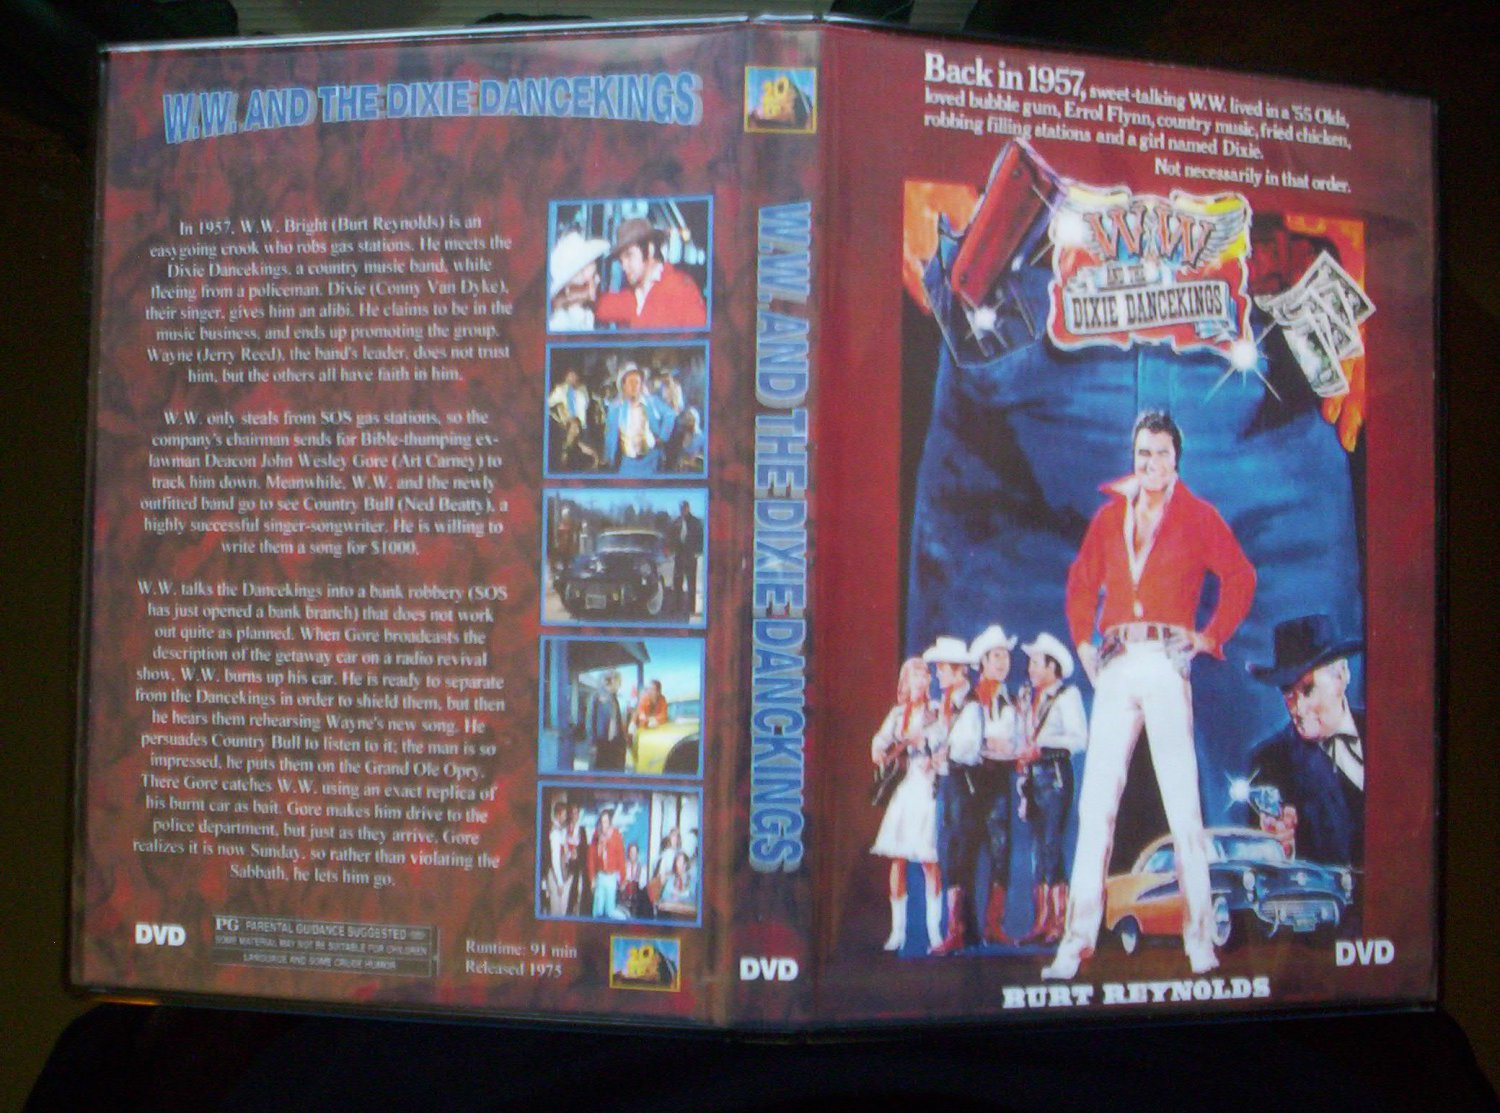 WW and the Dixie Dancekings DVD 1975